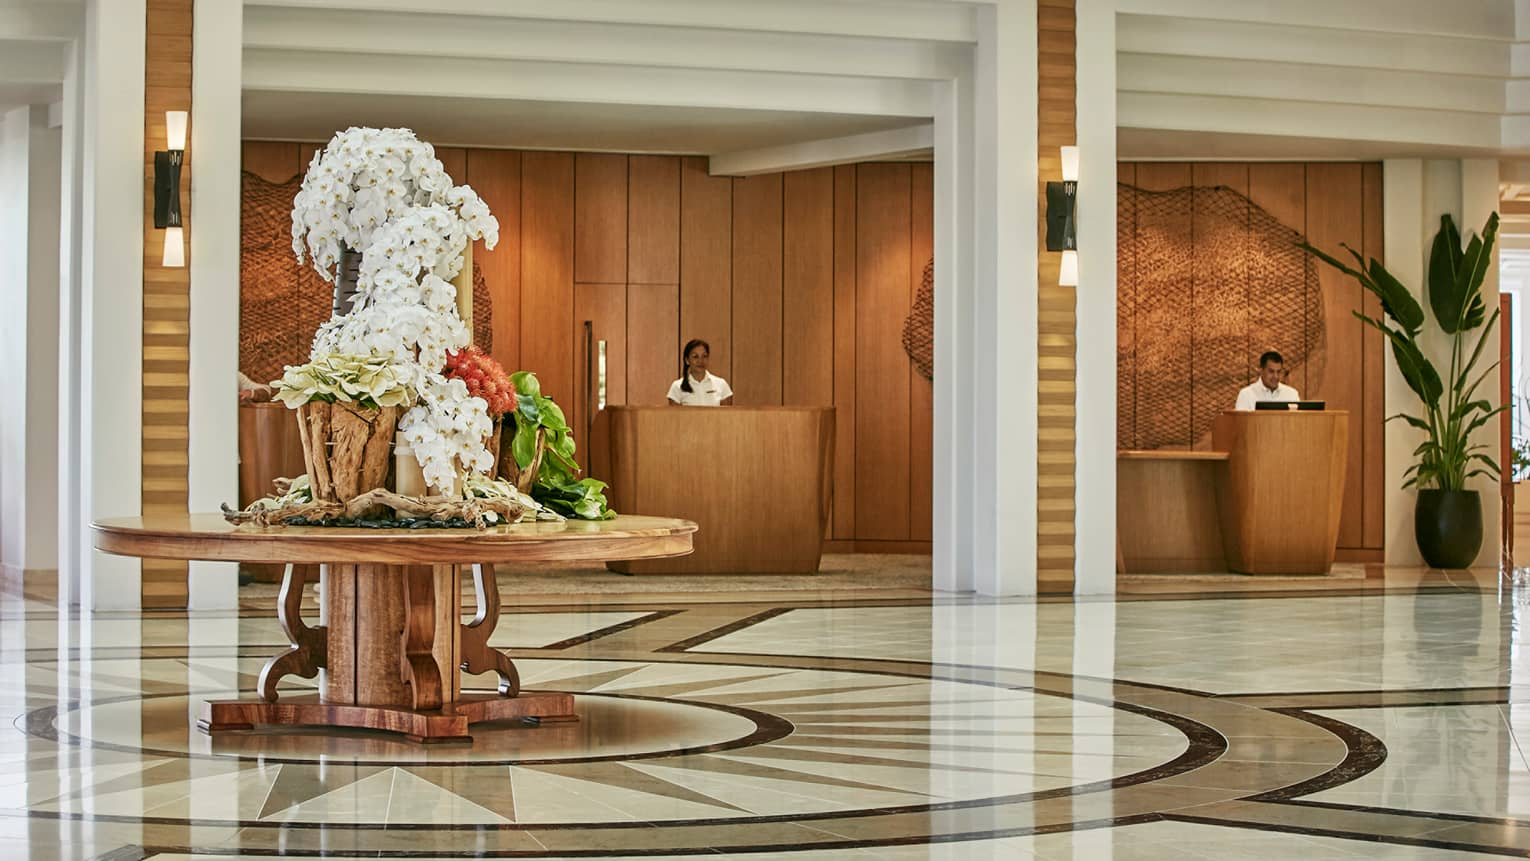 Four Seasons Oahu hotel lobby with desk, tropical flowers on large round table